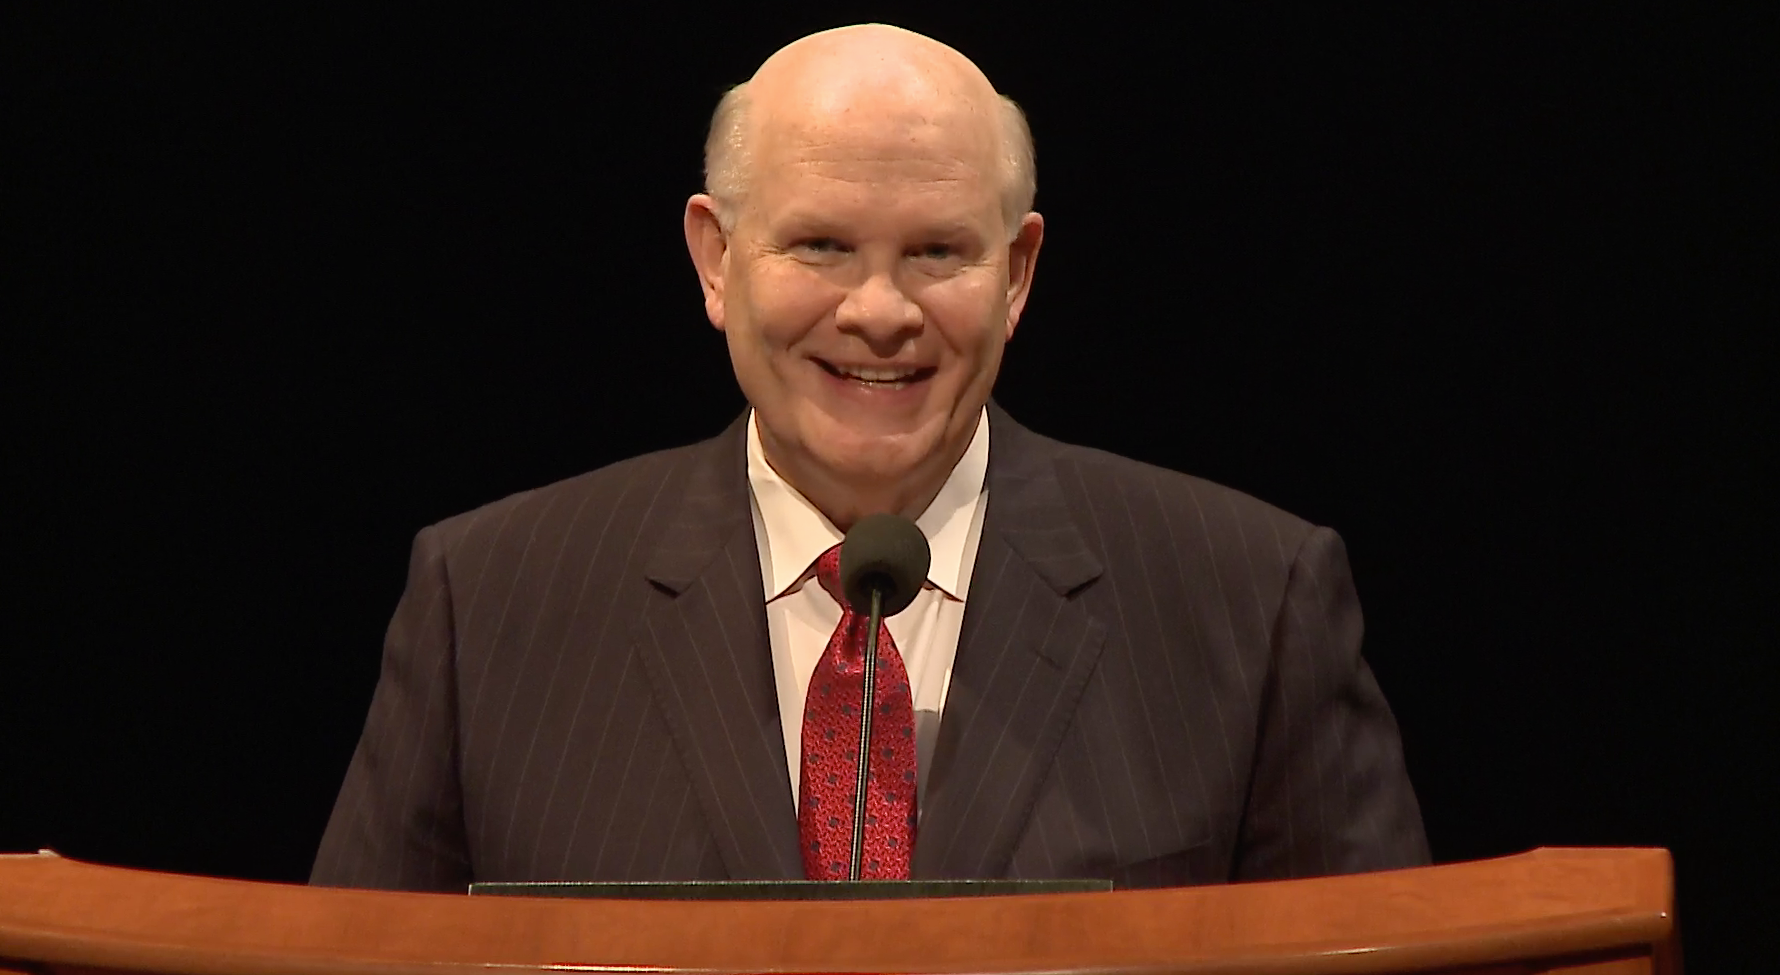 Elder Dale G. Renlund of the Quorum of the Twelve Apostles speaks during an instruction meeting to ward and stake leaders and members with temple and family history work callings and responsibilities. The image is from a screenshot from the Feb. 28 broadcast.